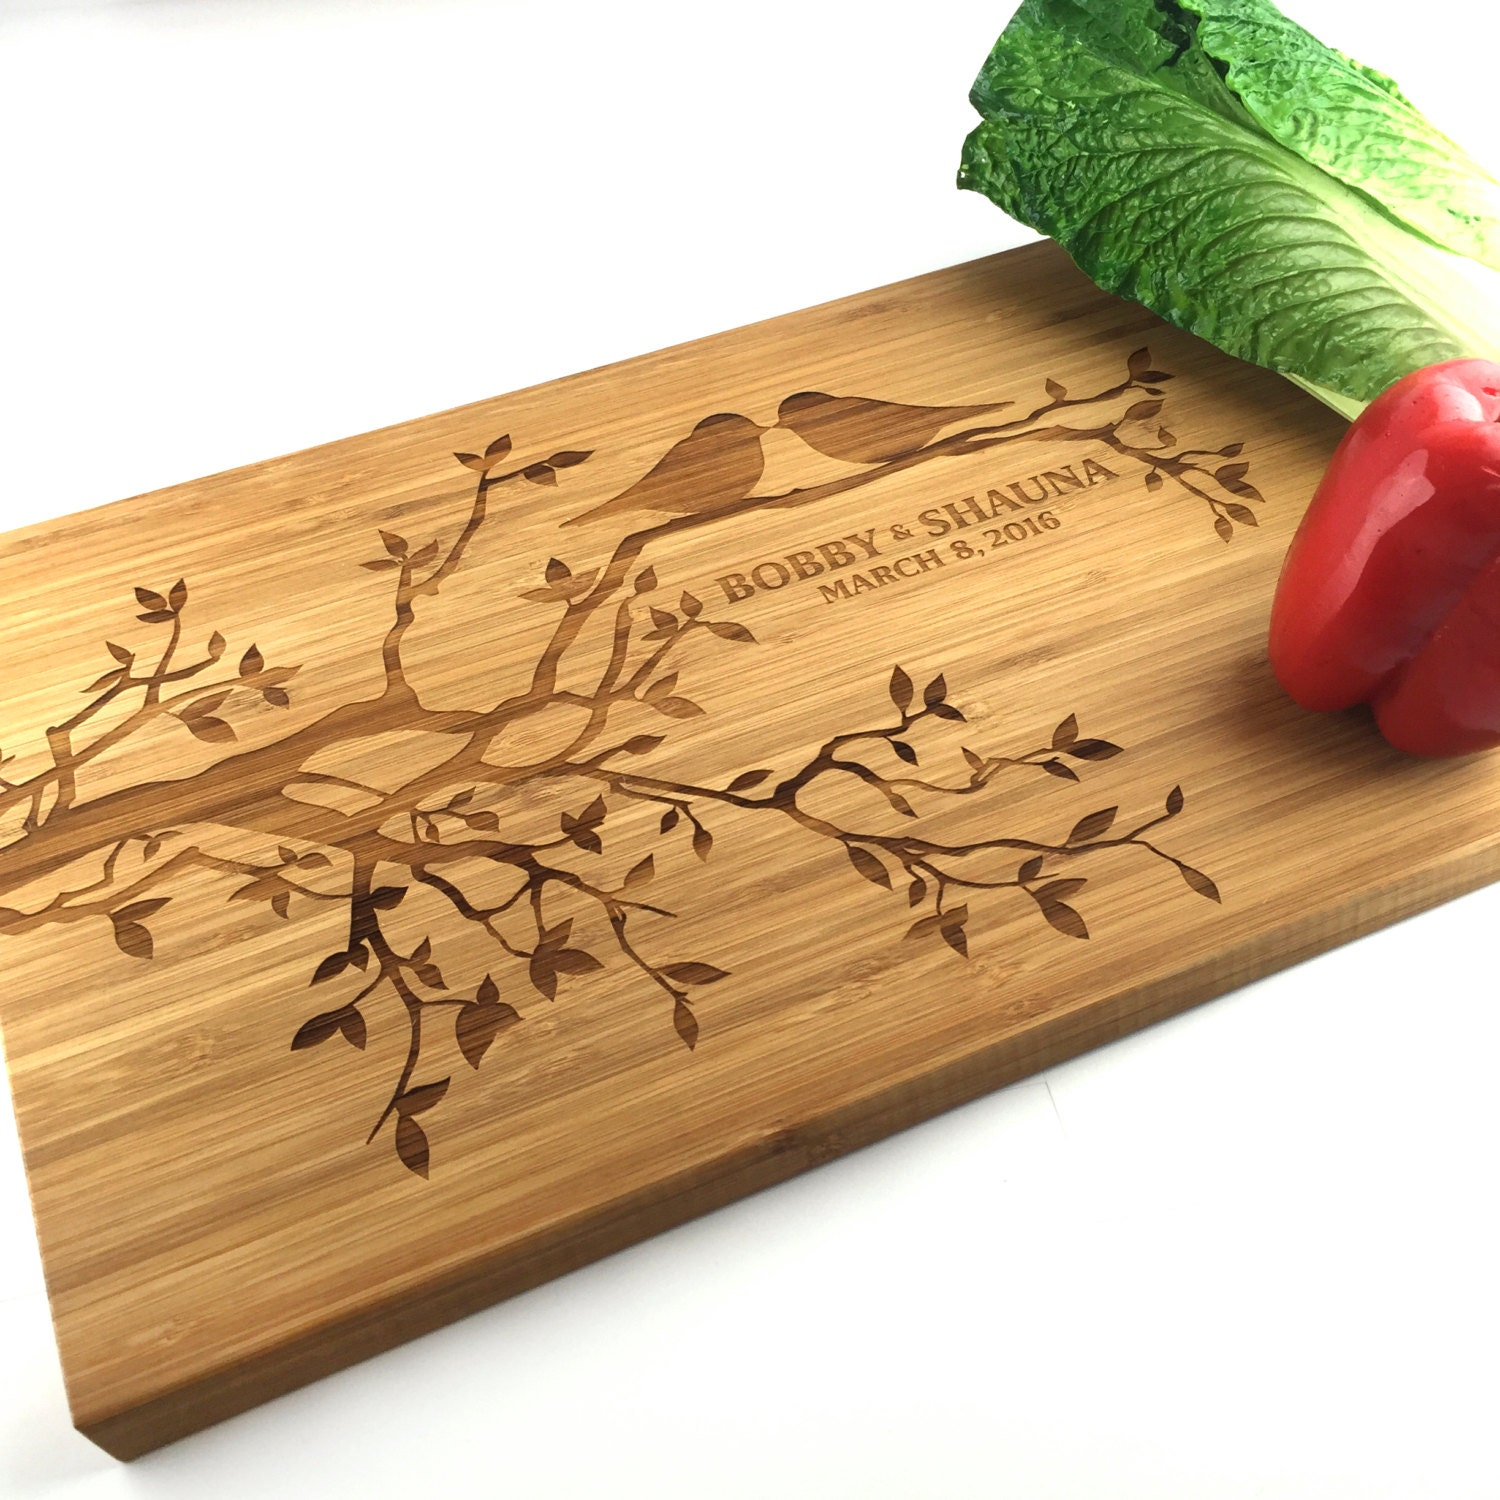 Cutting board personalized wedding gift love birds in a tree cutting board personalized wedding gift love birds in a tree branch flowers chopping block laser engraved wood board anniversary gift negle Image collections